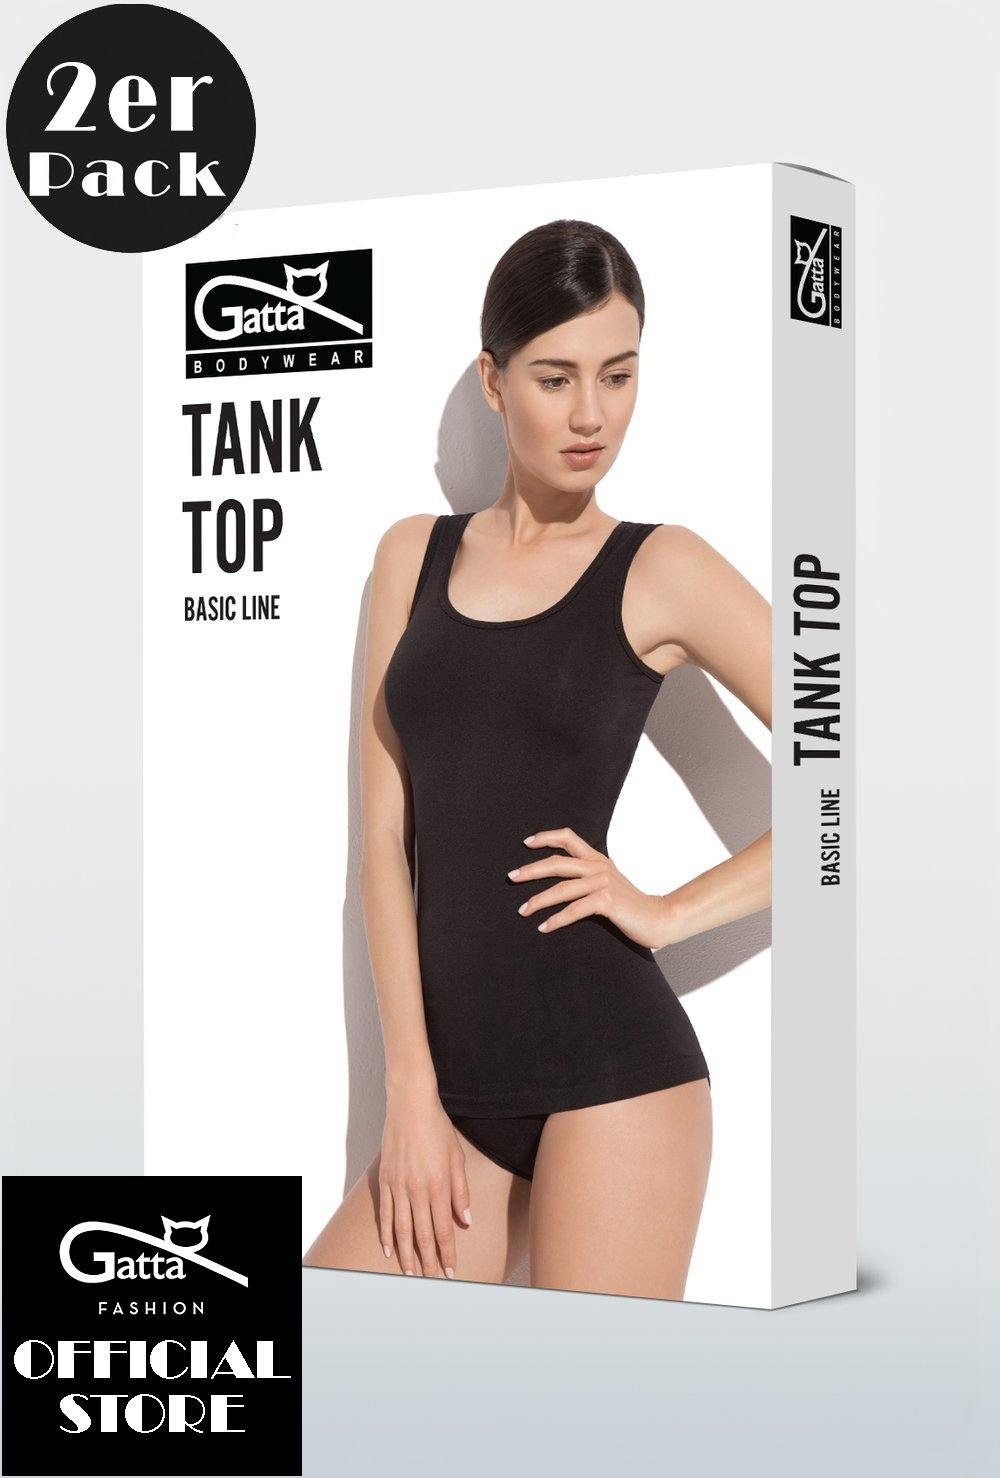 Gatta Damen Tank Top Shirt | 2er Pack | Microfaser - GATTA FASHION